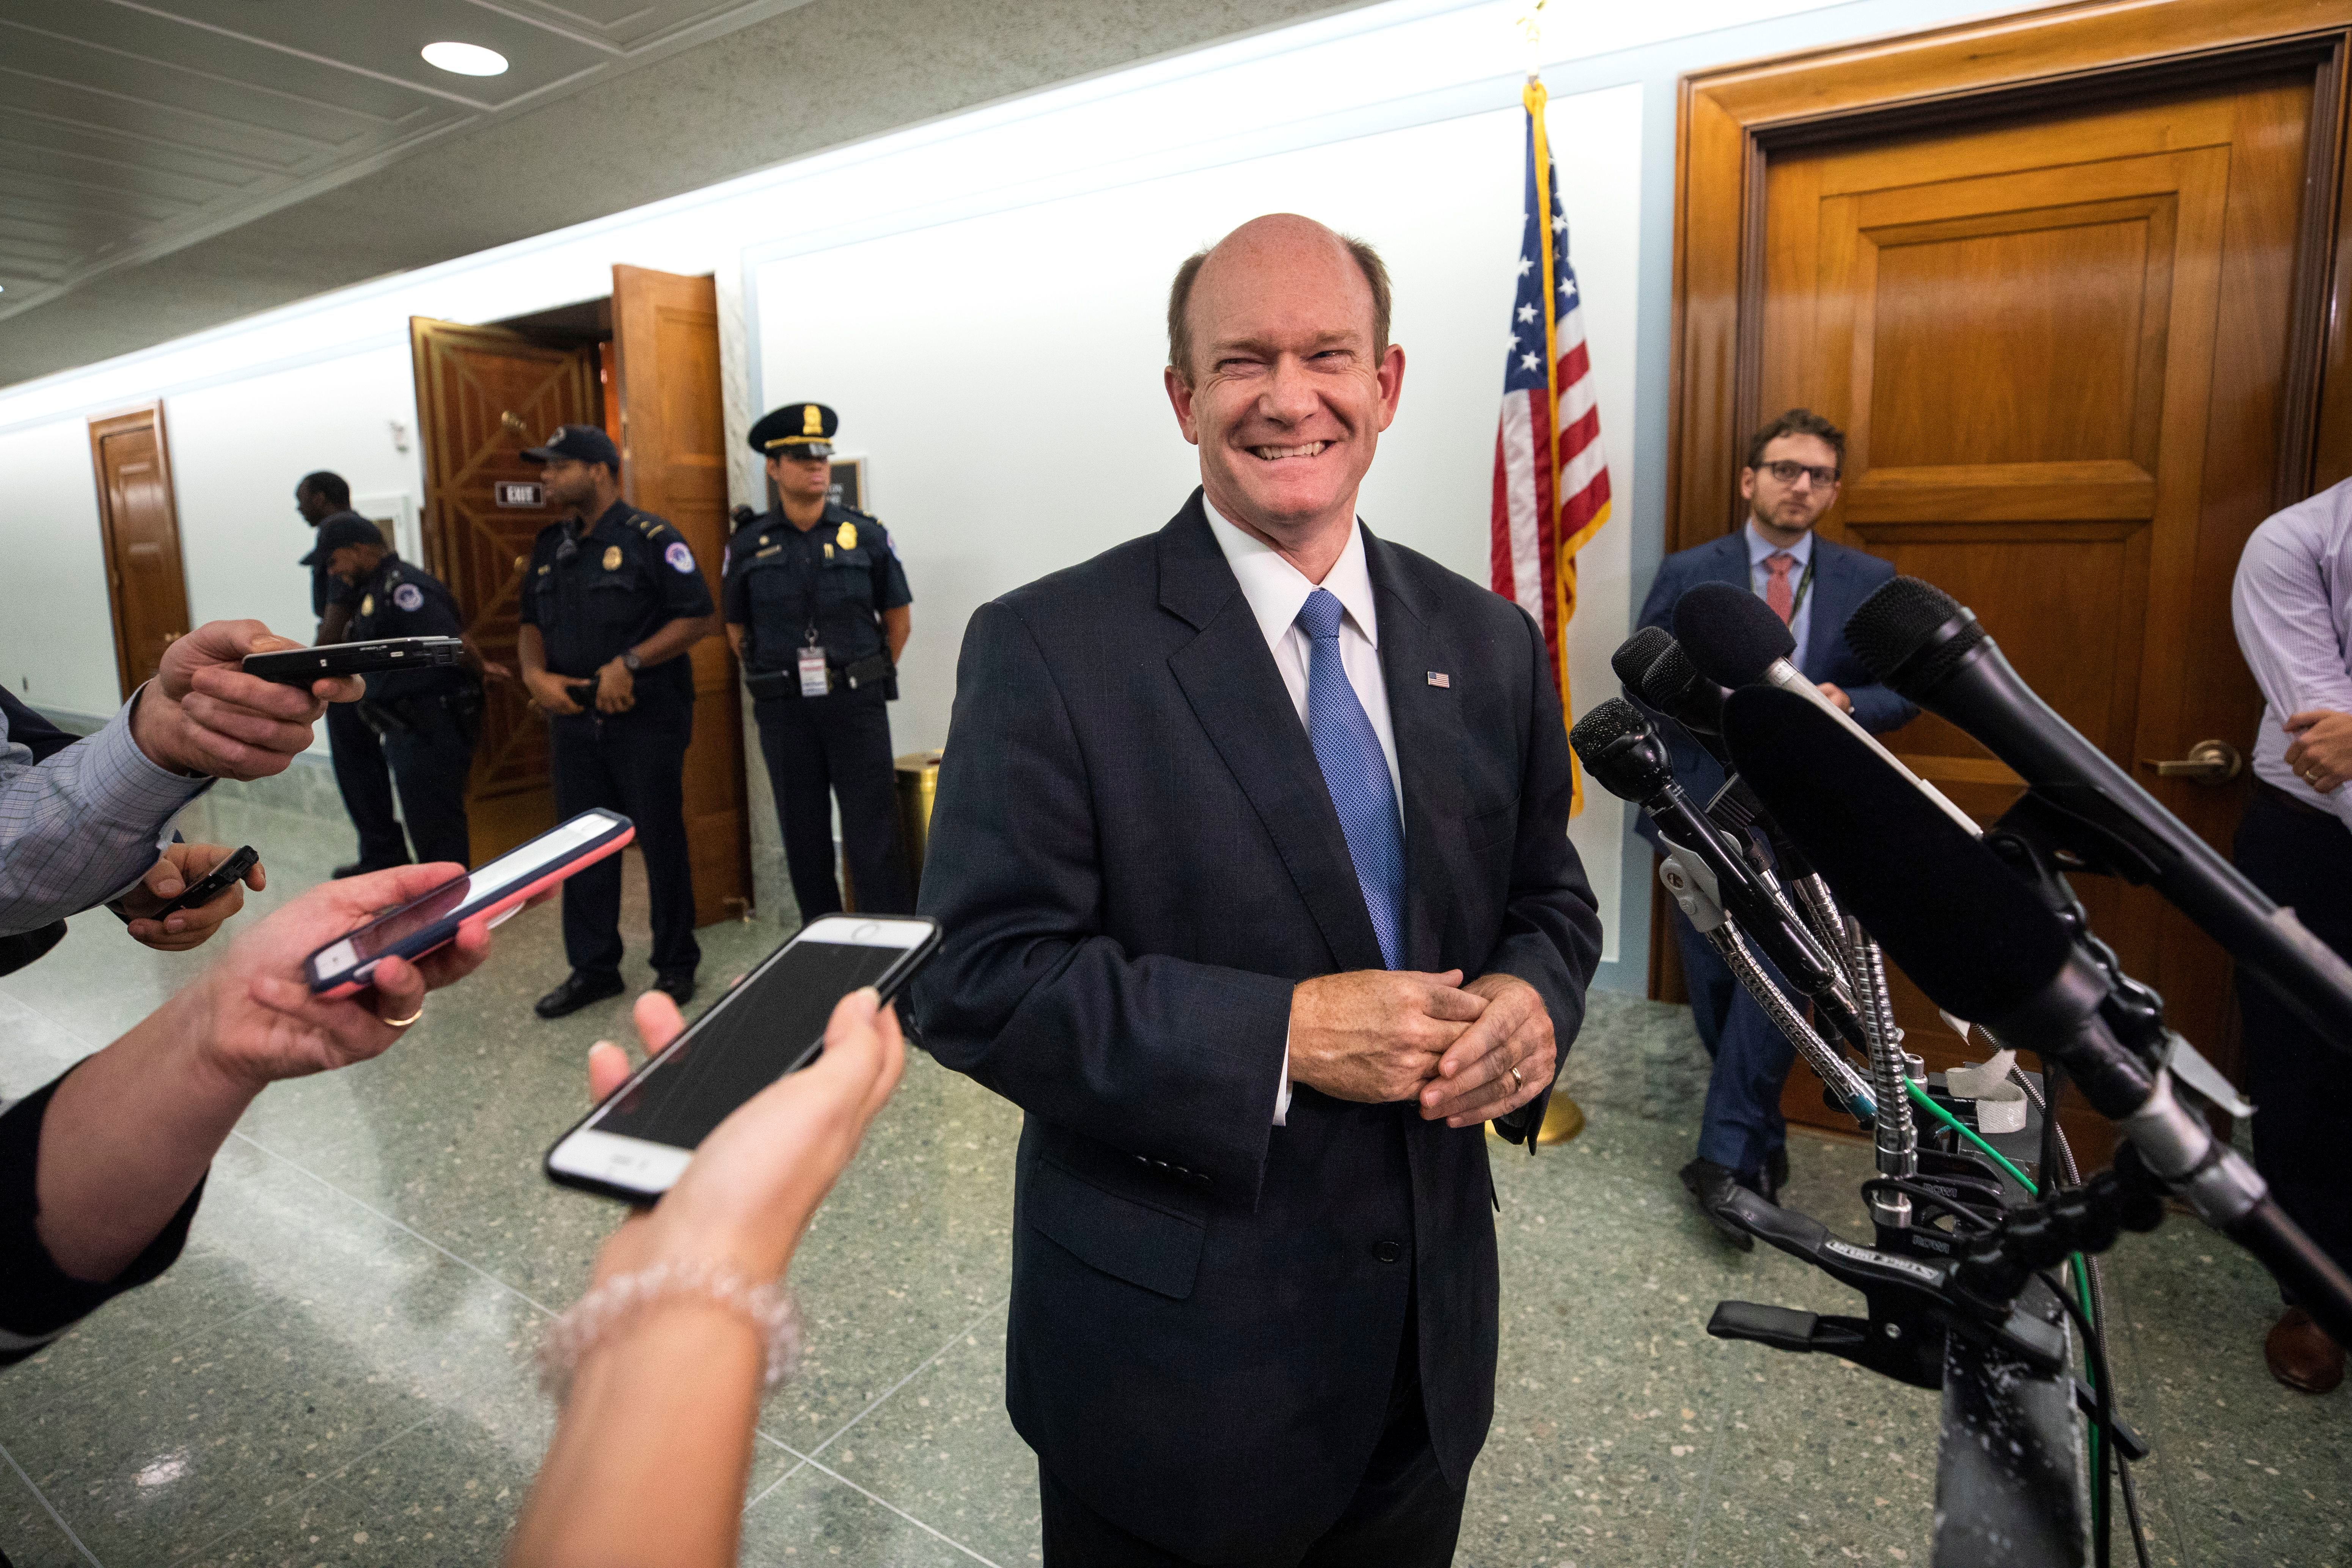 Sen. Chris Coons (D-Del.) speaks to the reporters after the Senate agreed to a one-week delay to allow for an FBI investigation of accusations against Brett Kavanaugh. (Jim Lo Scalzo/EPA-EFE/REX)